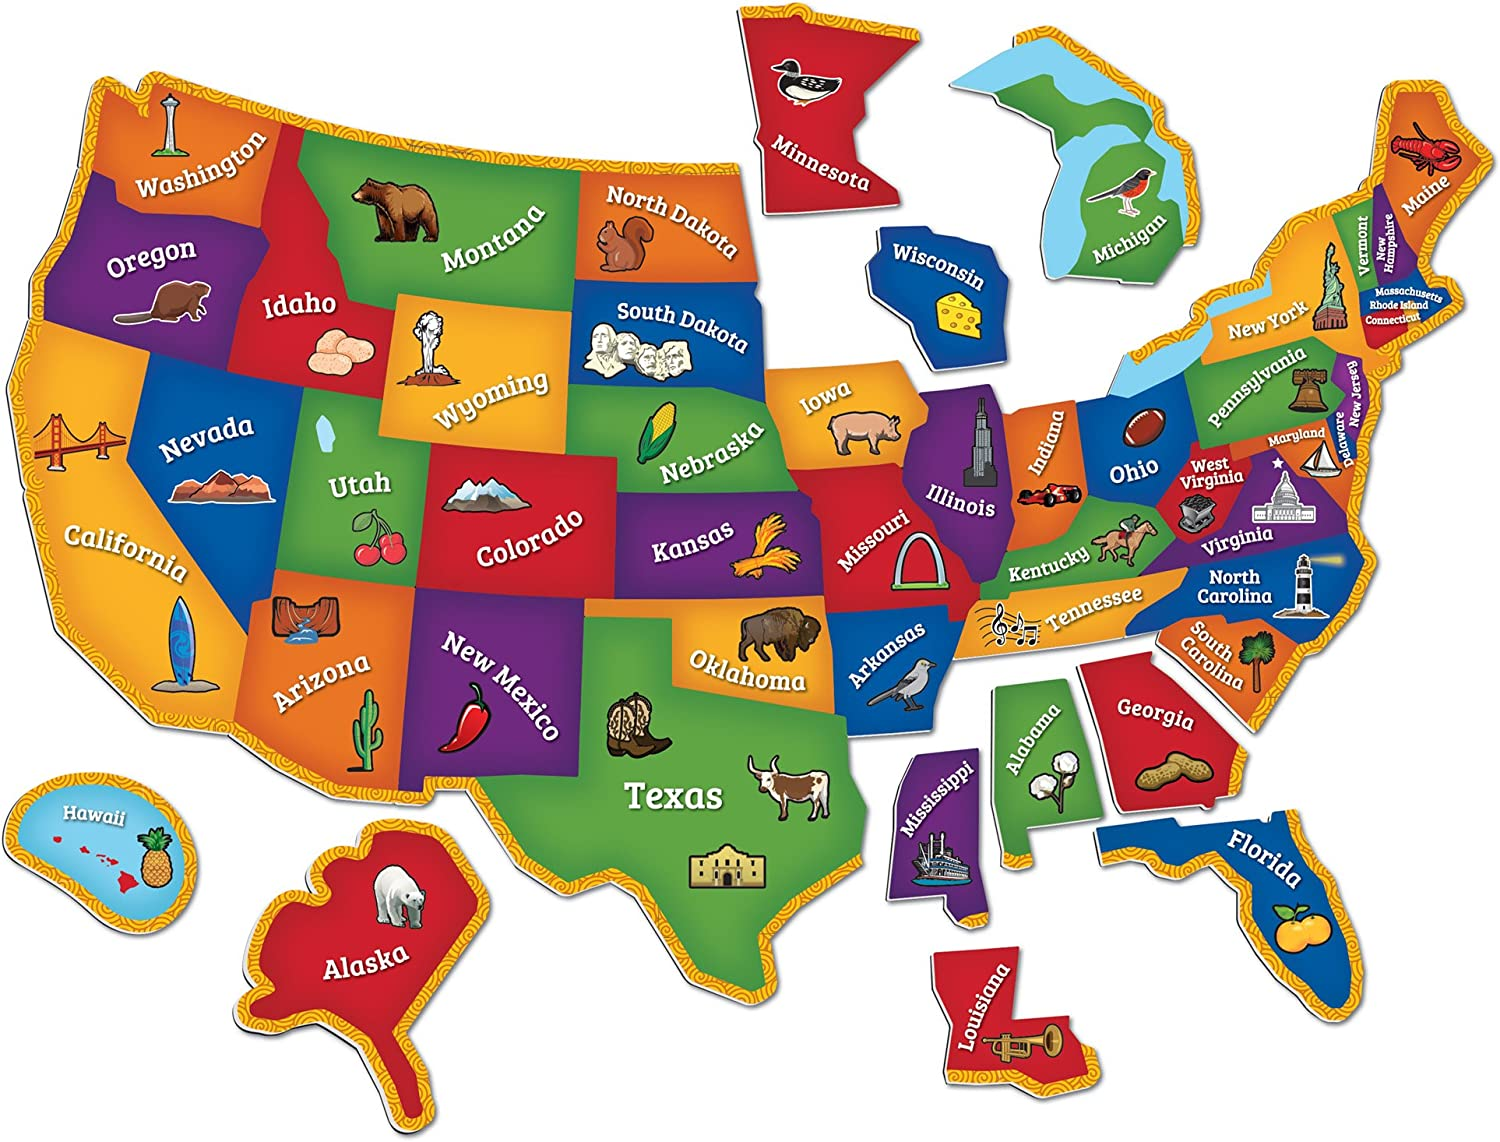 Us Map Puzzle Interactive Amazon.com: Learning Resources Magnetic U.S. Map Puzzle, Geography